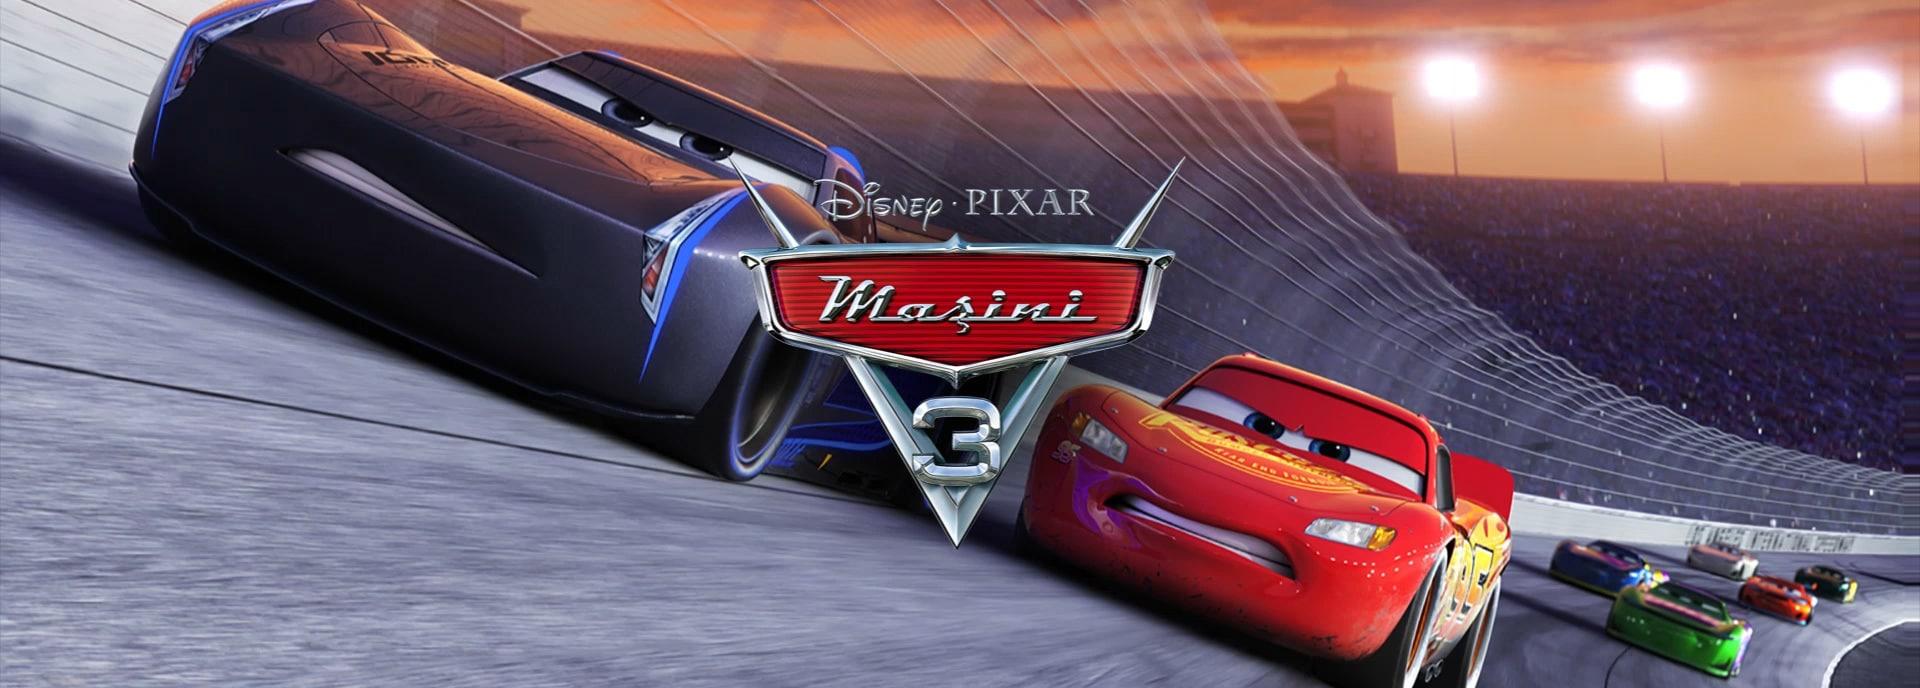 RO - Cars 3 Flex Hero - Animated